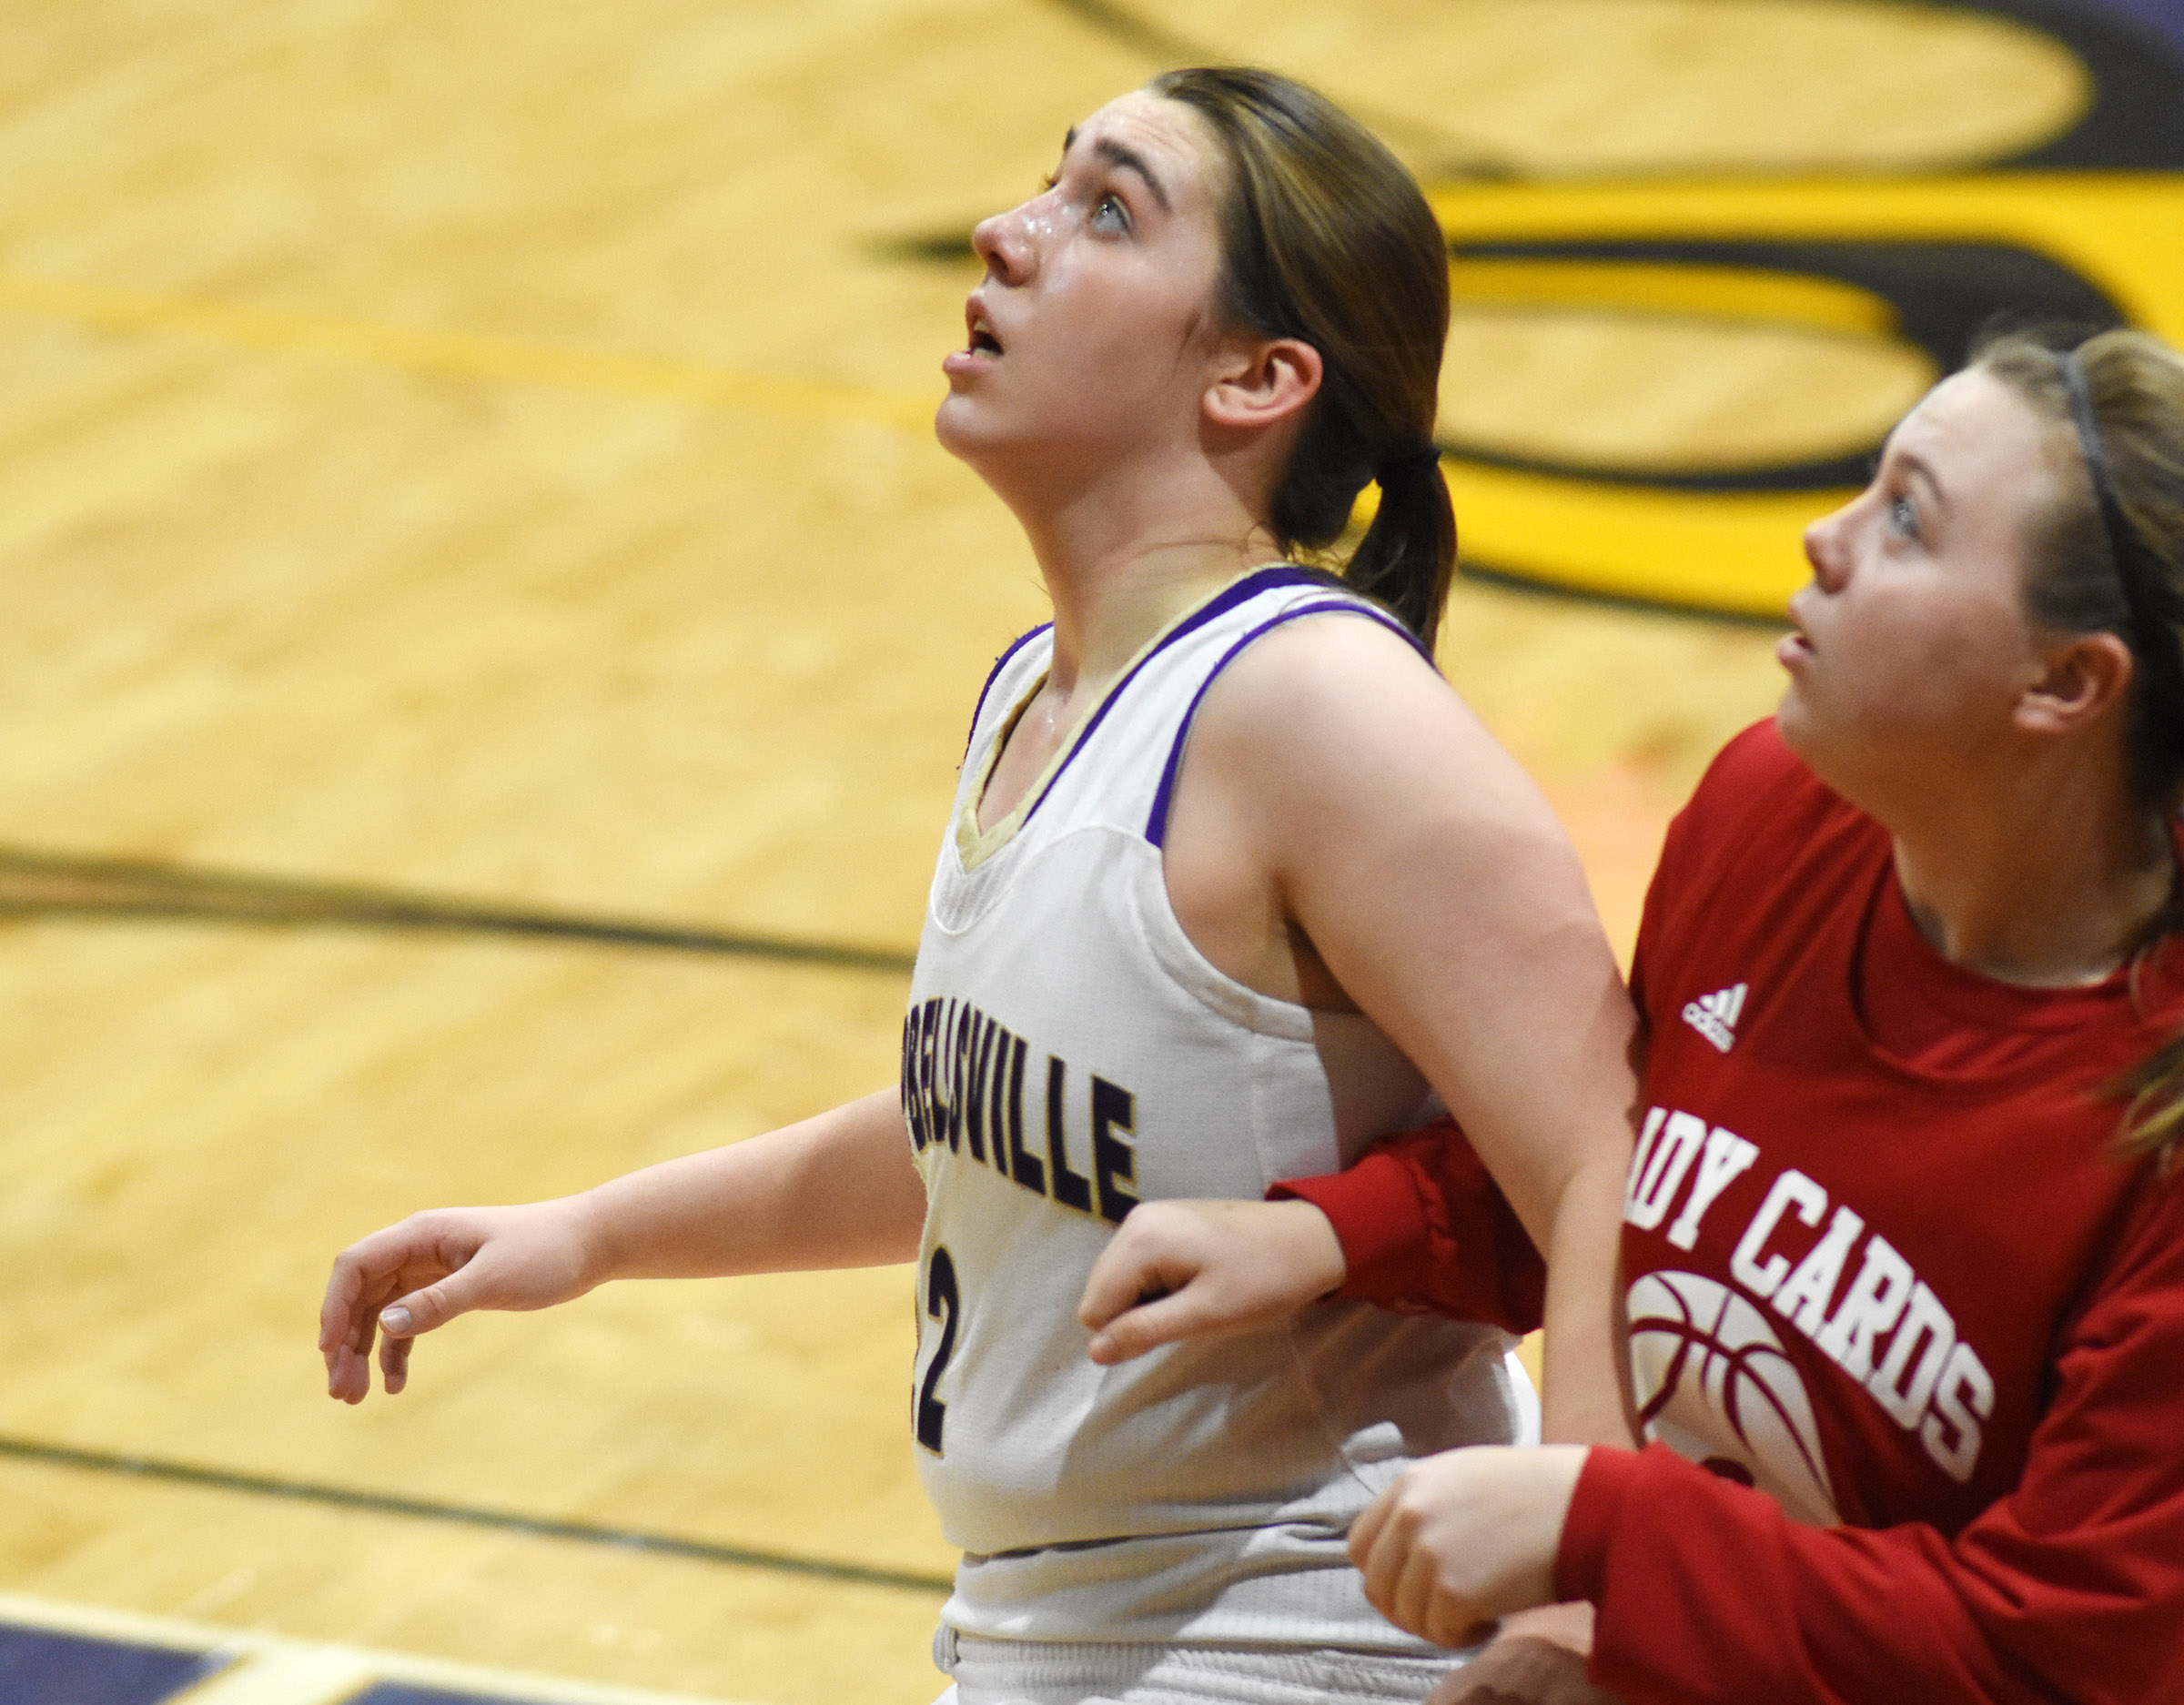 CHS freshman Abi Wiedewitsch looks for a rebound.